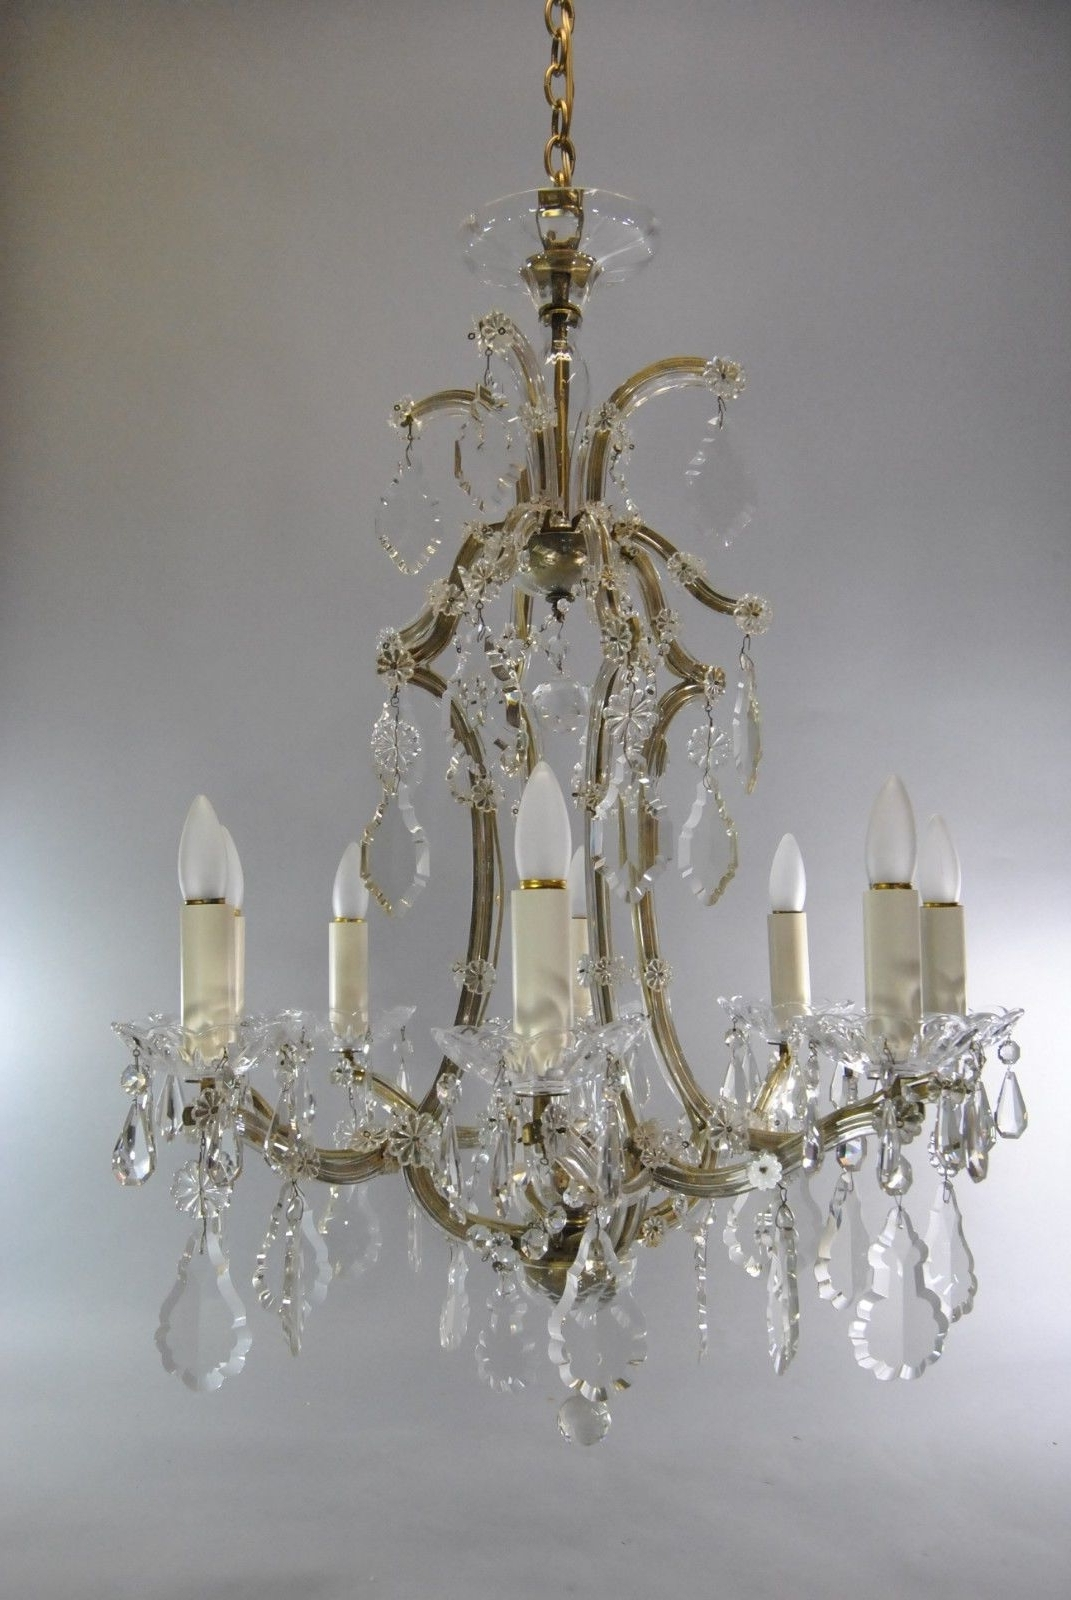 2019 Chandelier: Stunning French Crystal Chandelier French Empire Pertaining To Vintage French Chandeliers (View 5 of 20)